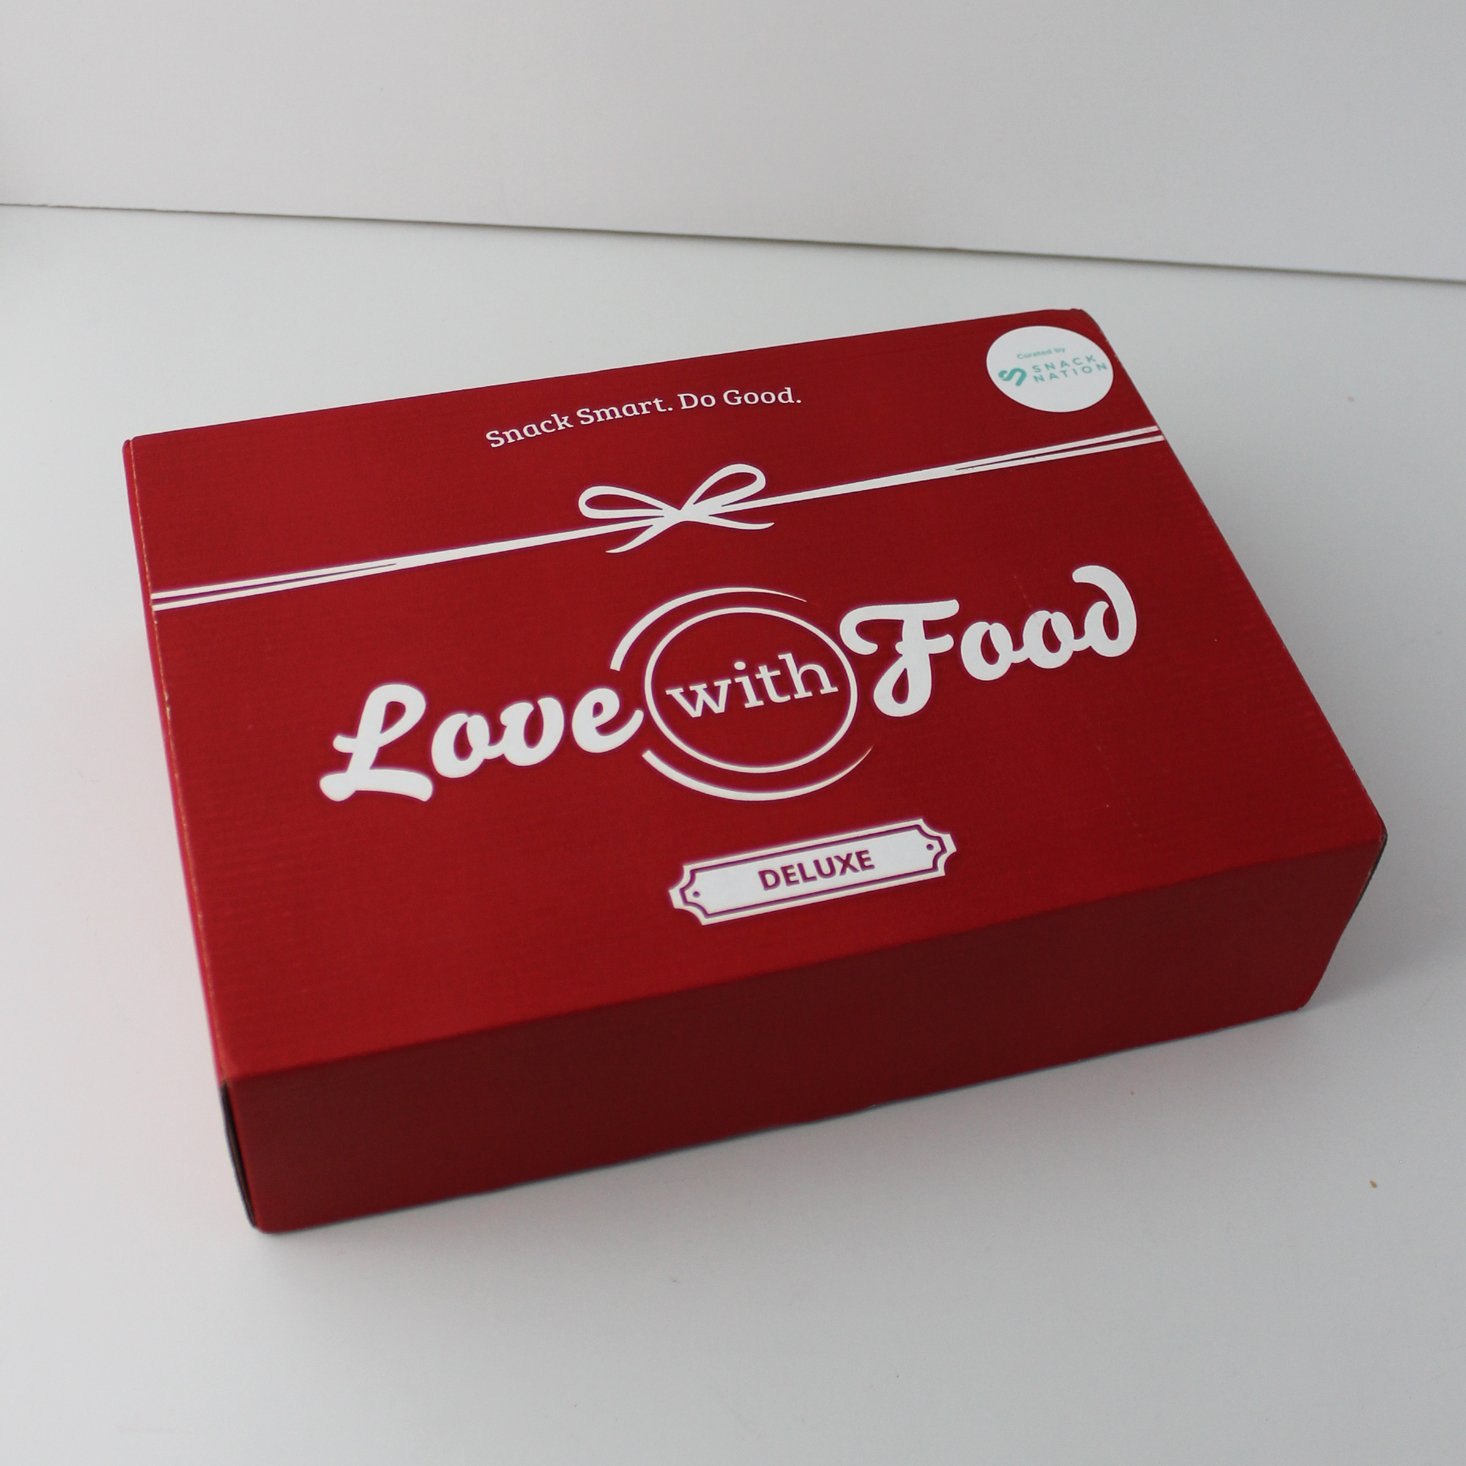 Love With Food Deluxe Box Review – February 2019